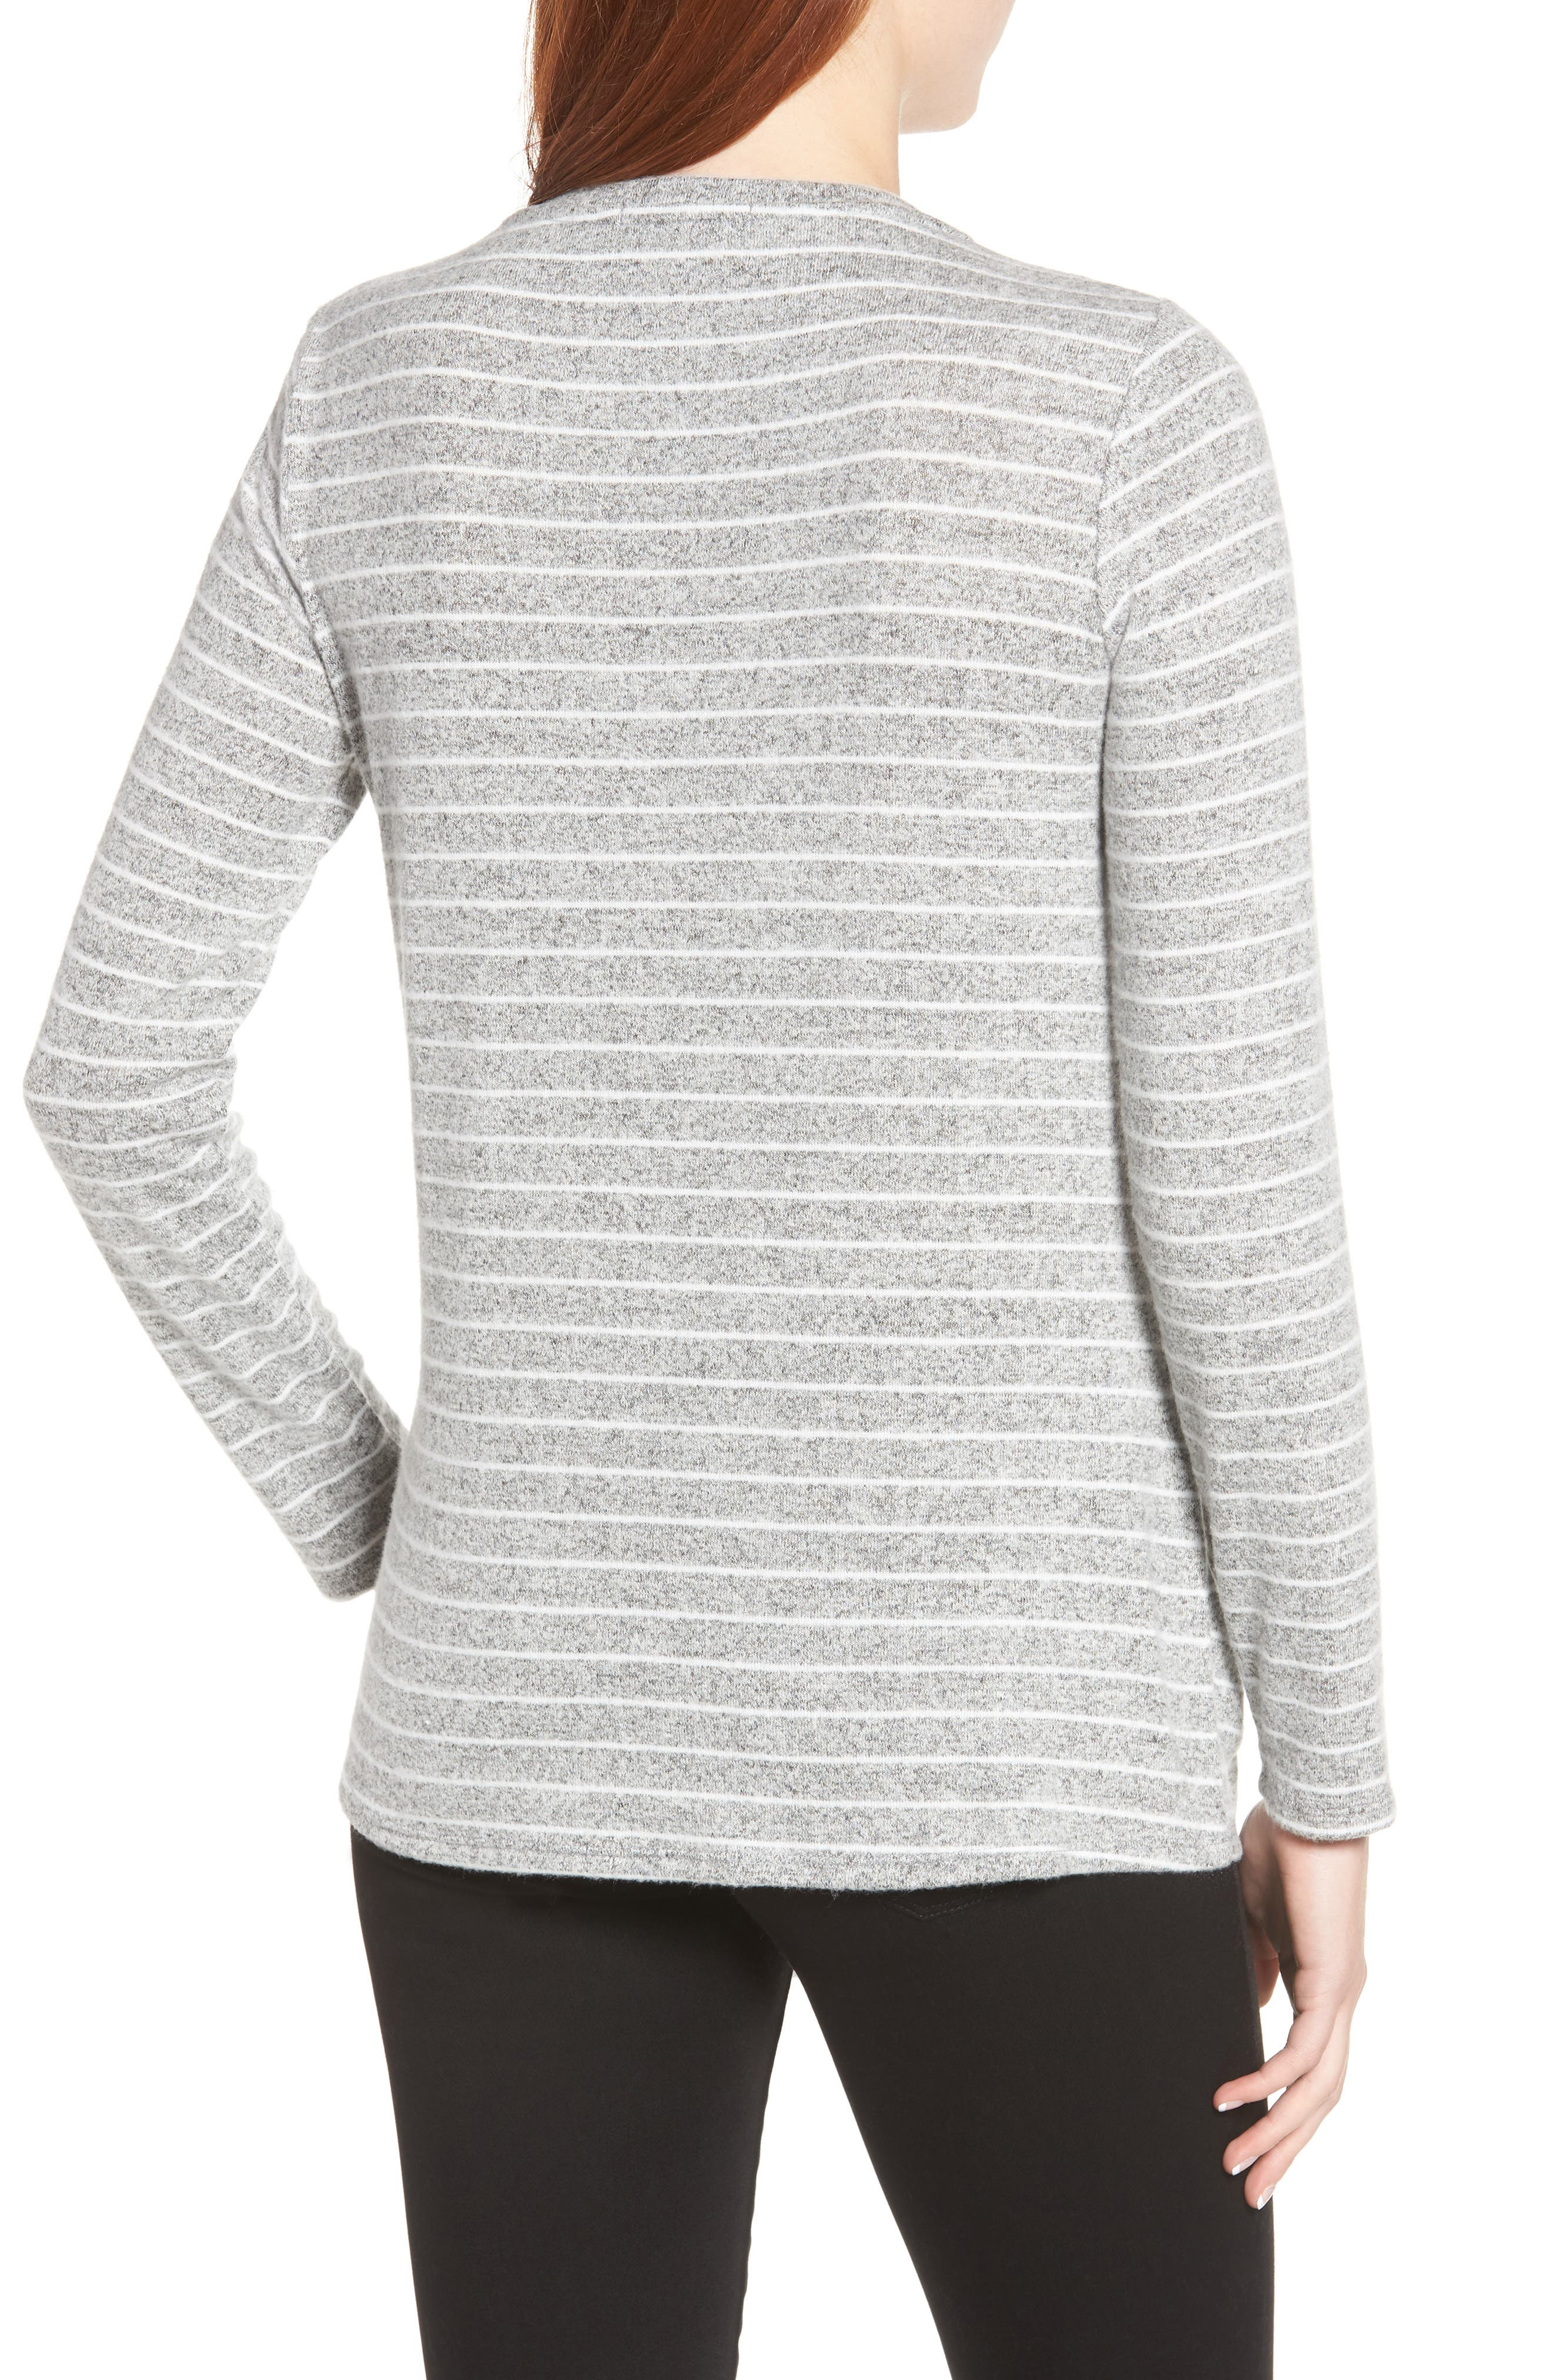 x Living in Yellow Lou Tie Front Fleece Sweater,                             Alternate thumbnail 2, color,                             GREY/ IVORY